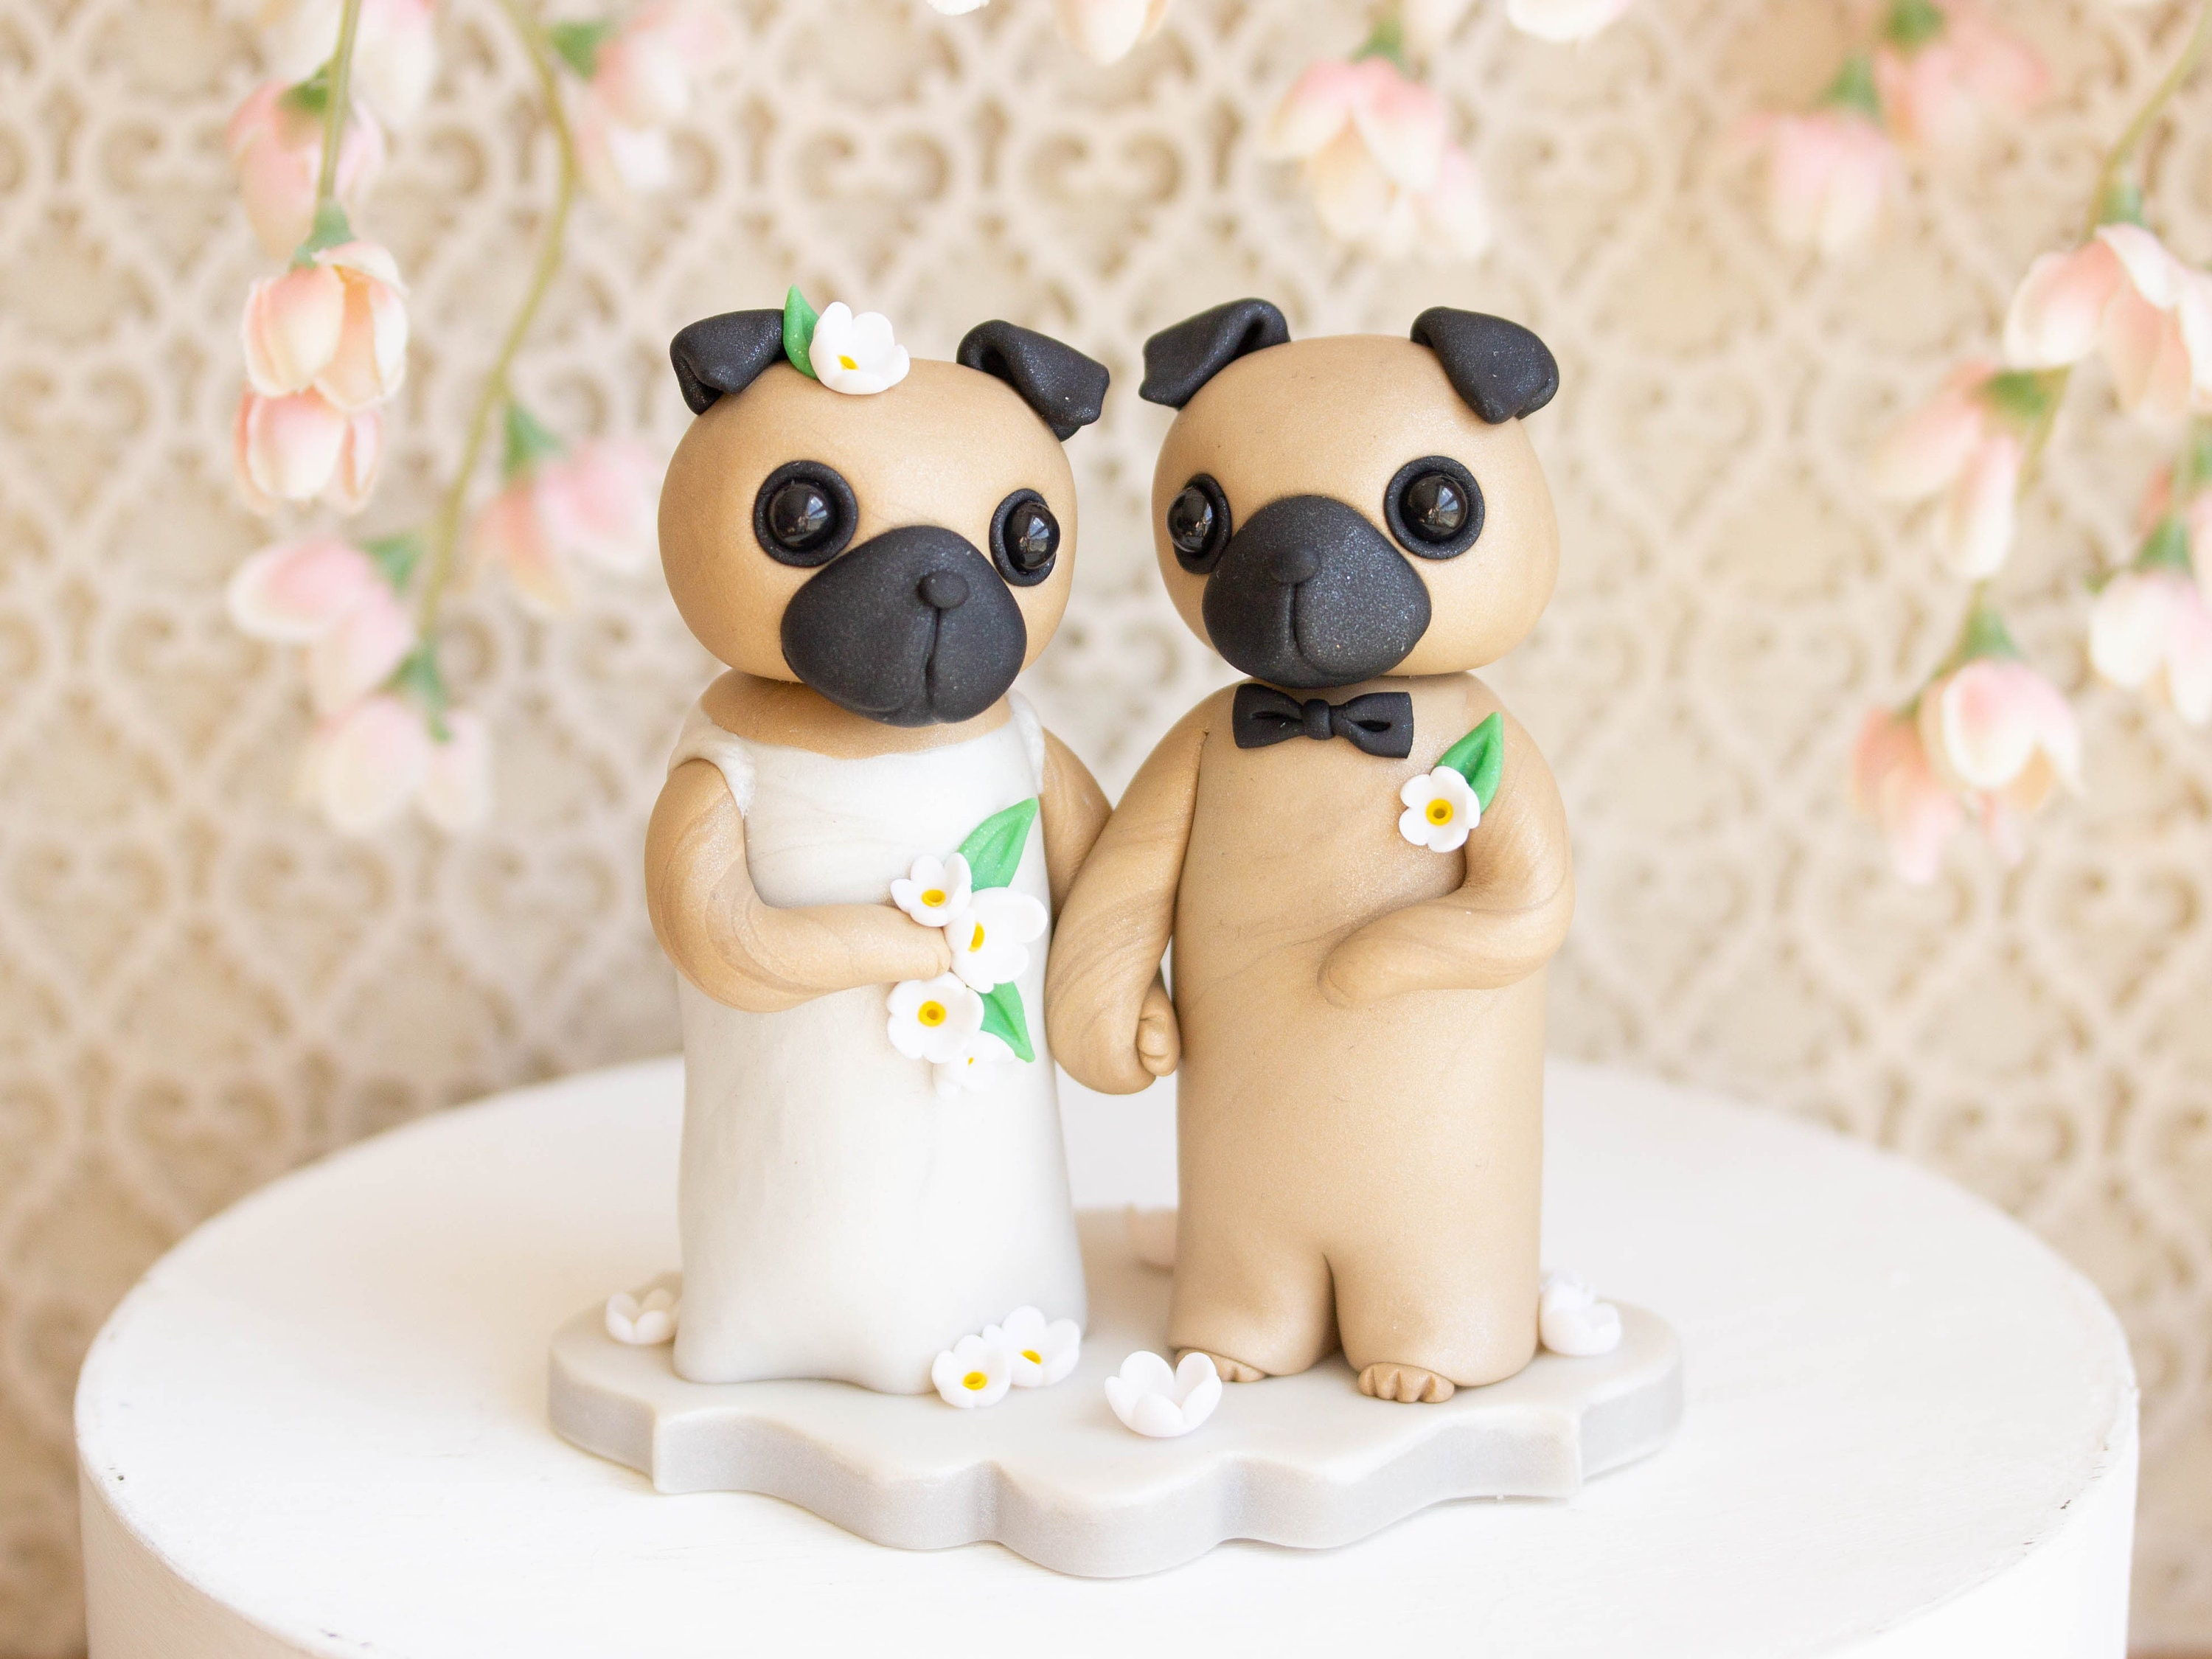 Pug Wedding Cake Topper By Bonjour Poupette Imagez Co